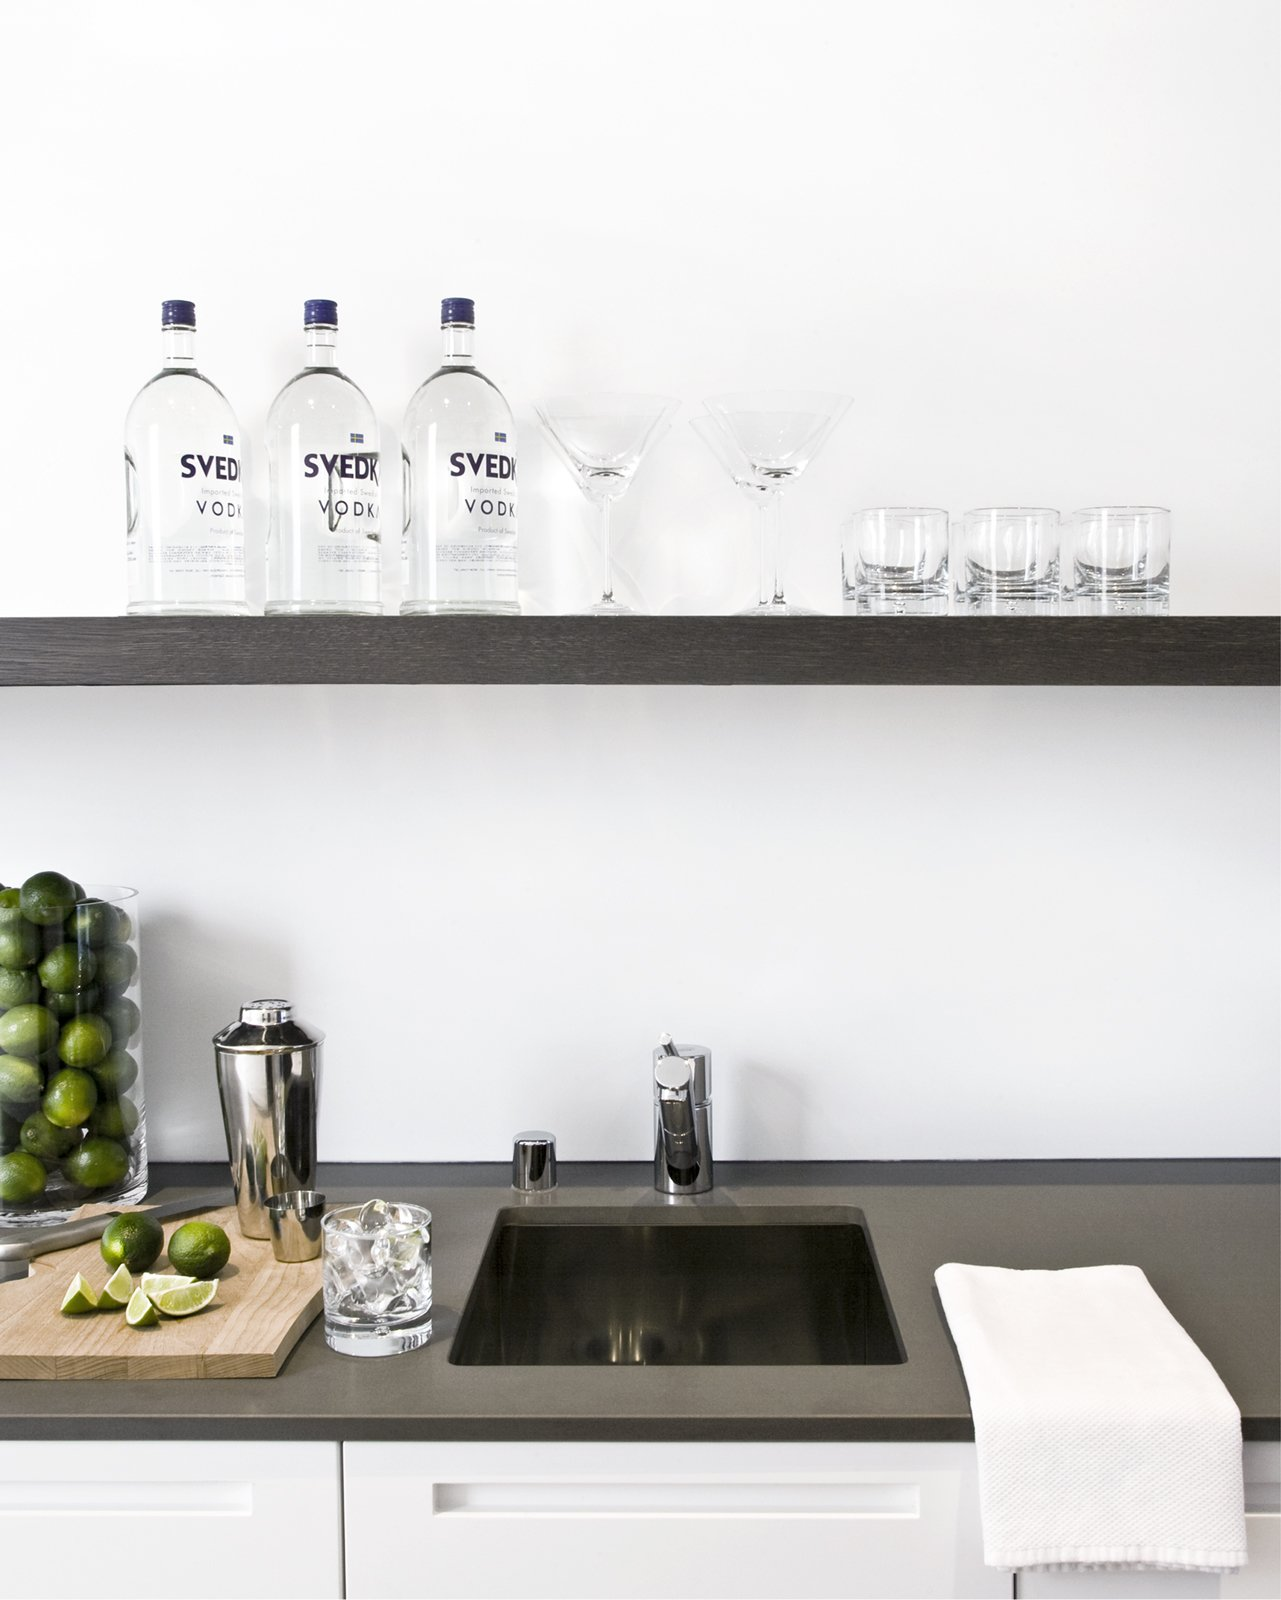 The wet bar at the end of the kitchen is equipped with a spout for filtered water, ice maker, wine fridge, and over-sink shelving--and is the happy-hour hotspot.Photo by   Ben Mayorga Photography  Photo 4 of 6 in 6 Home Wet Bars That Will Inspire You to Up Your Entertaining Game from Pacific Heights Remodel